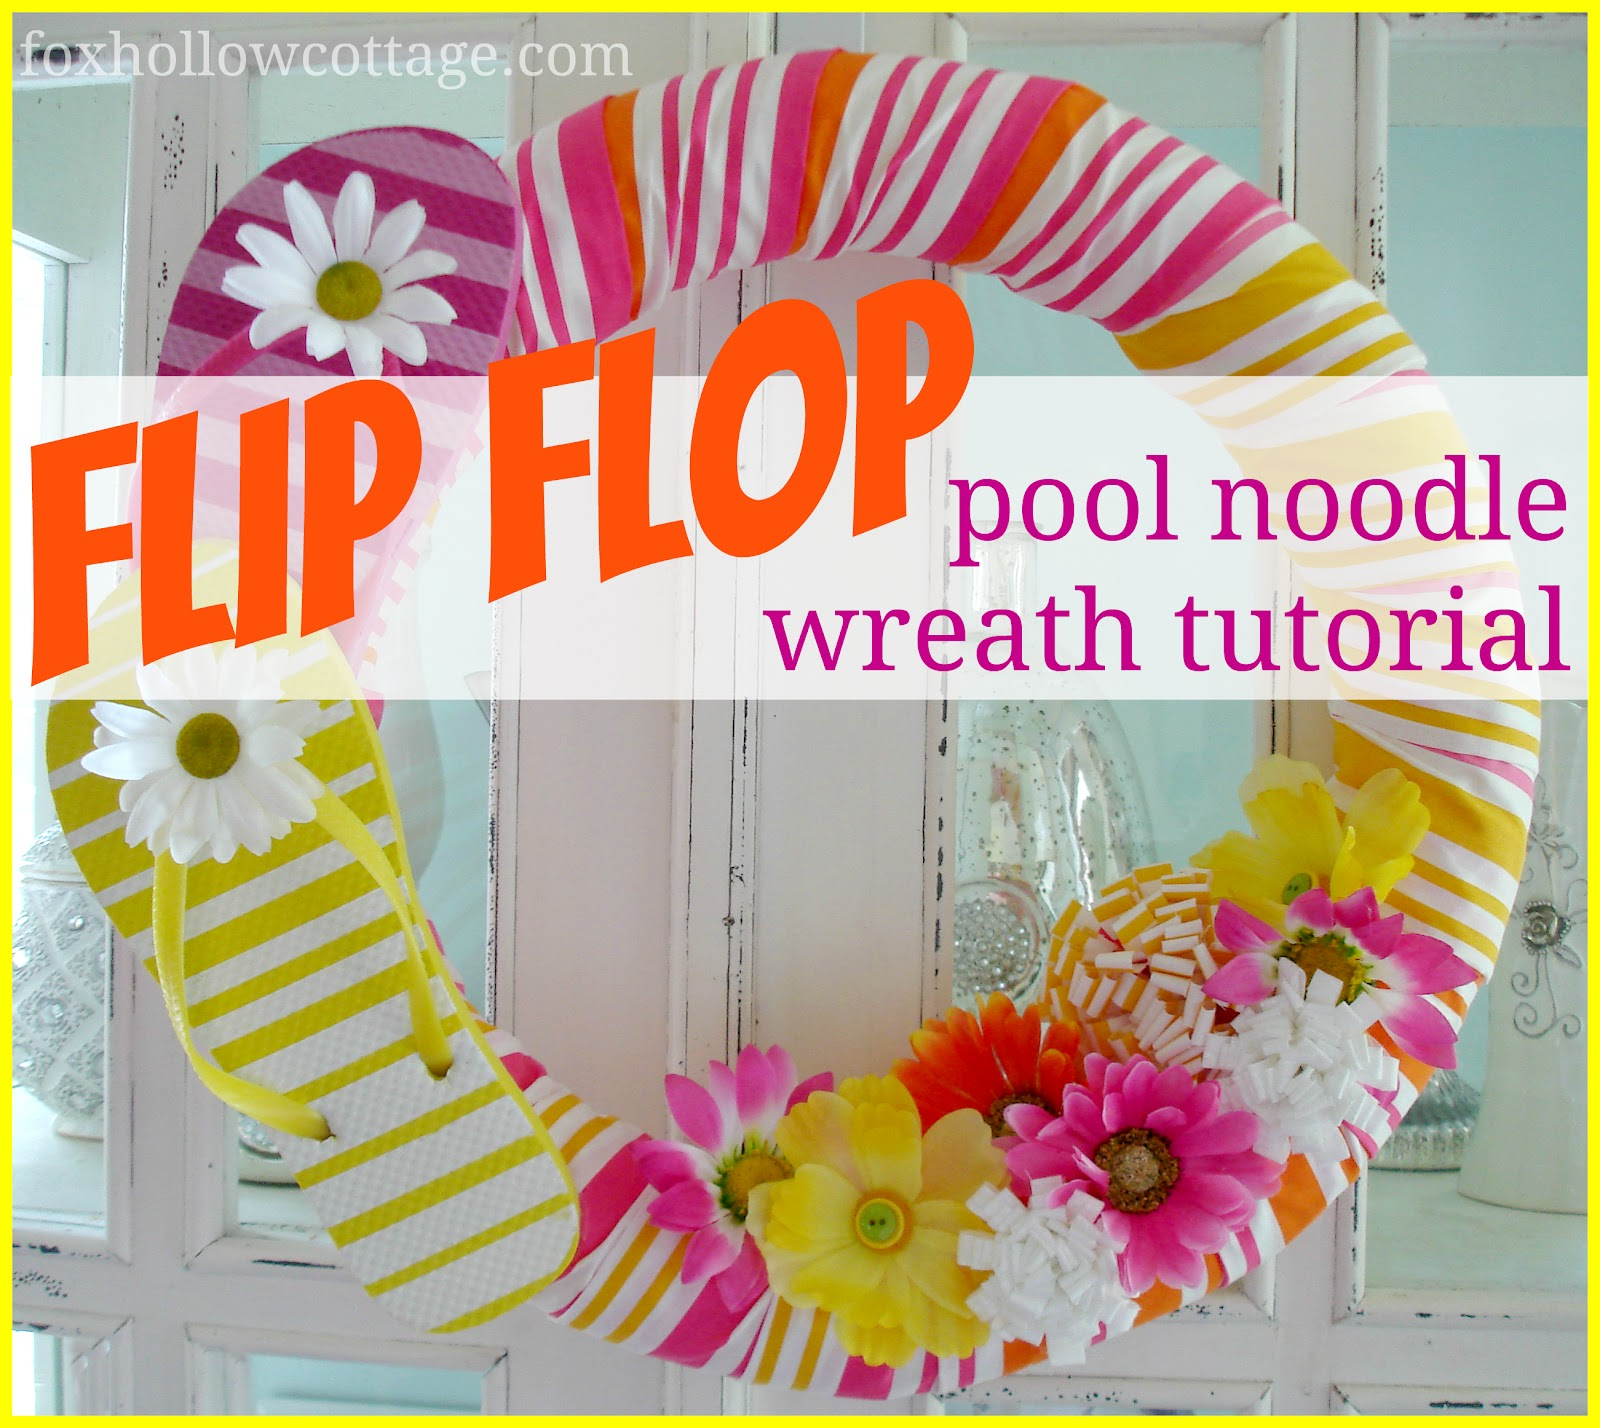 Flip+Flop+Pool+Noodle+Wreath+tutorial+ta